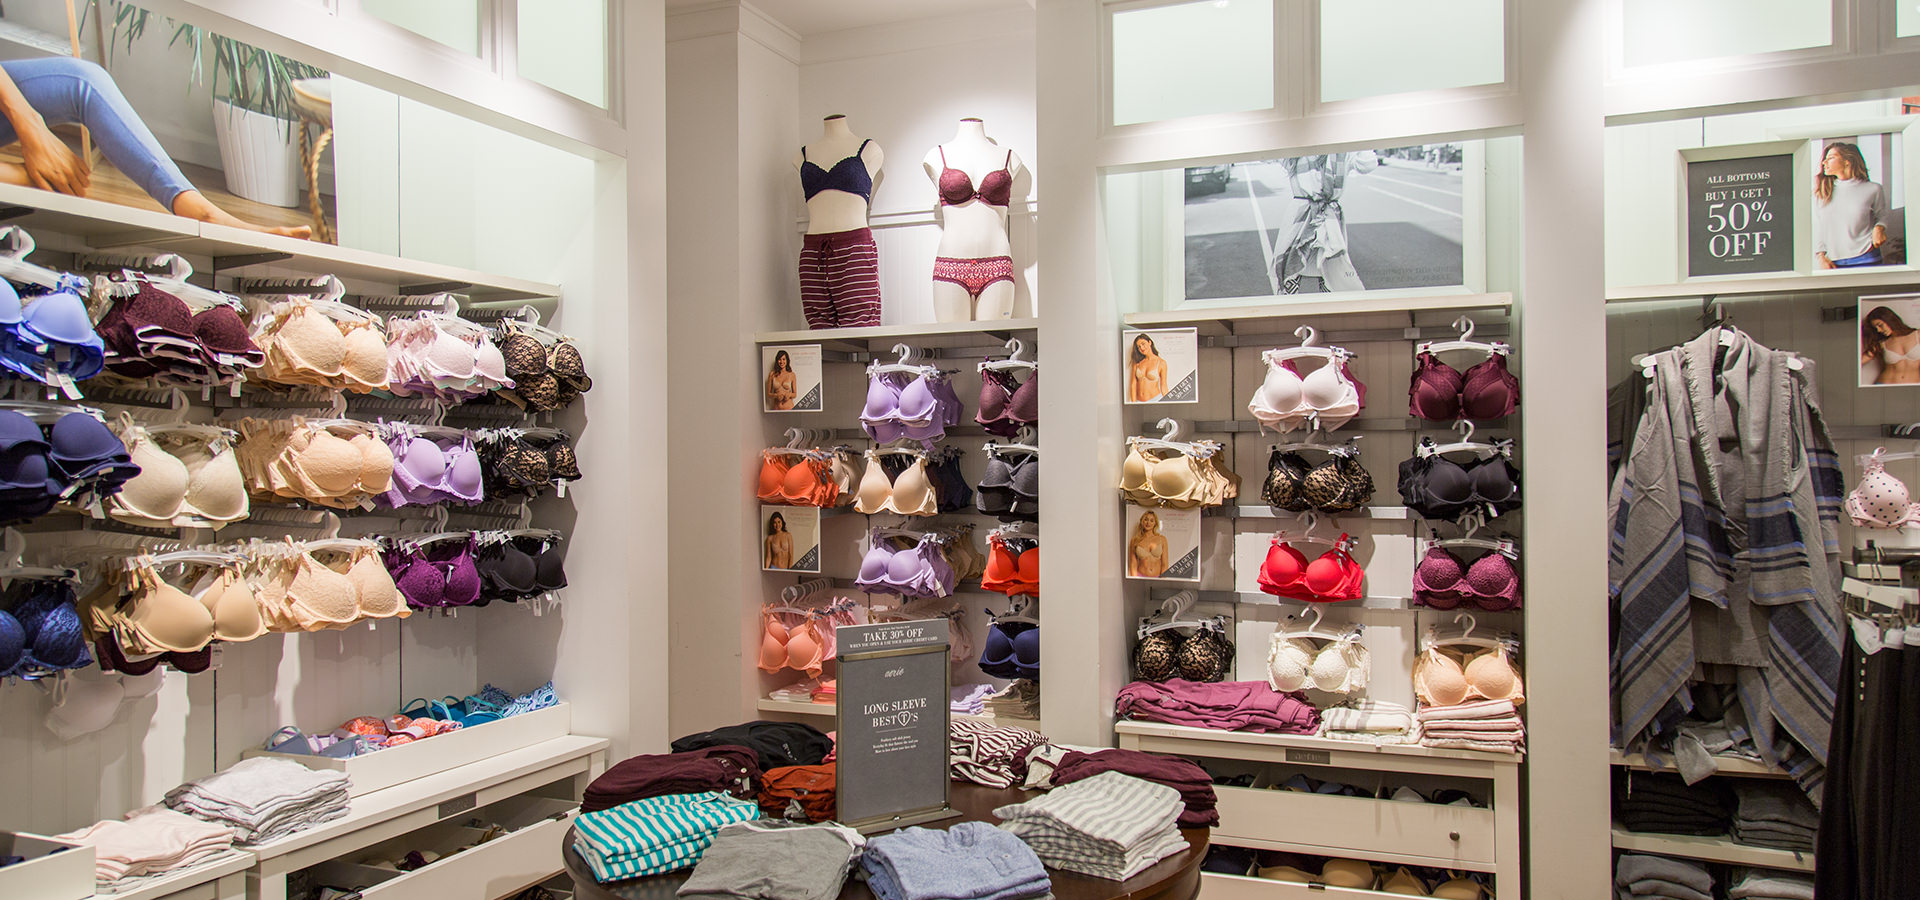 Aerie By American Eagle Near Me In Dulles VA